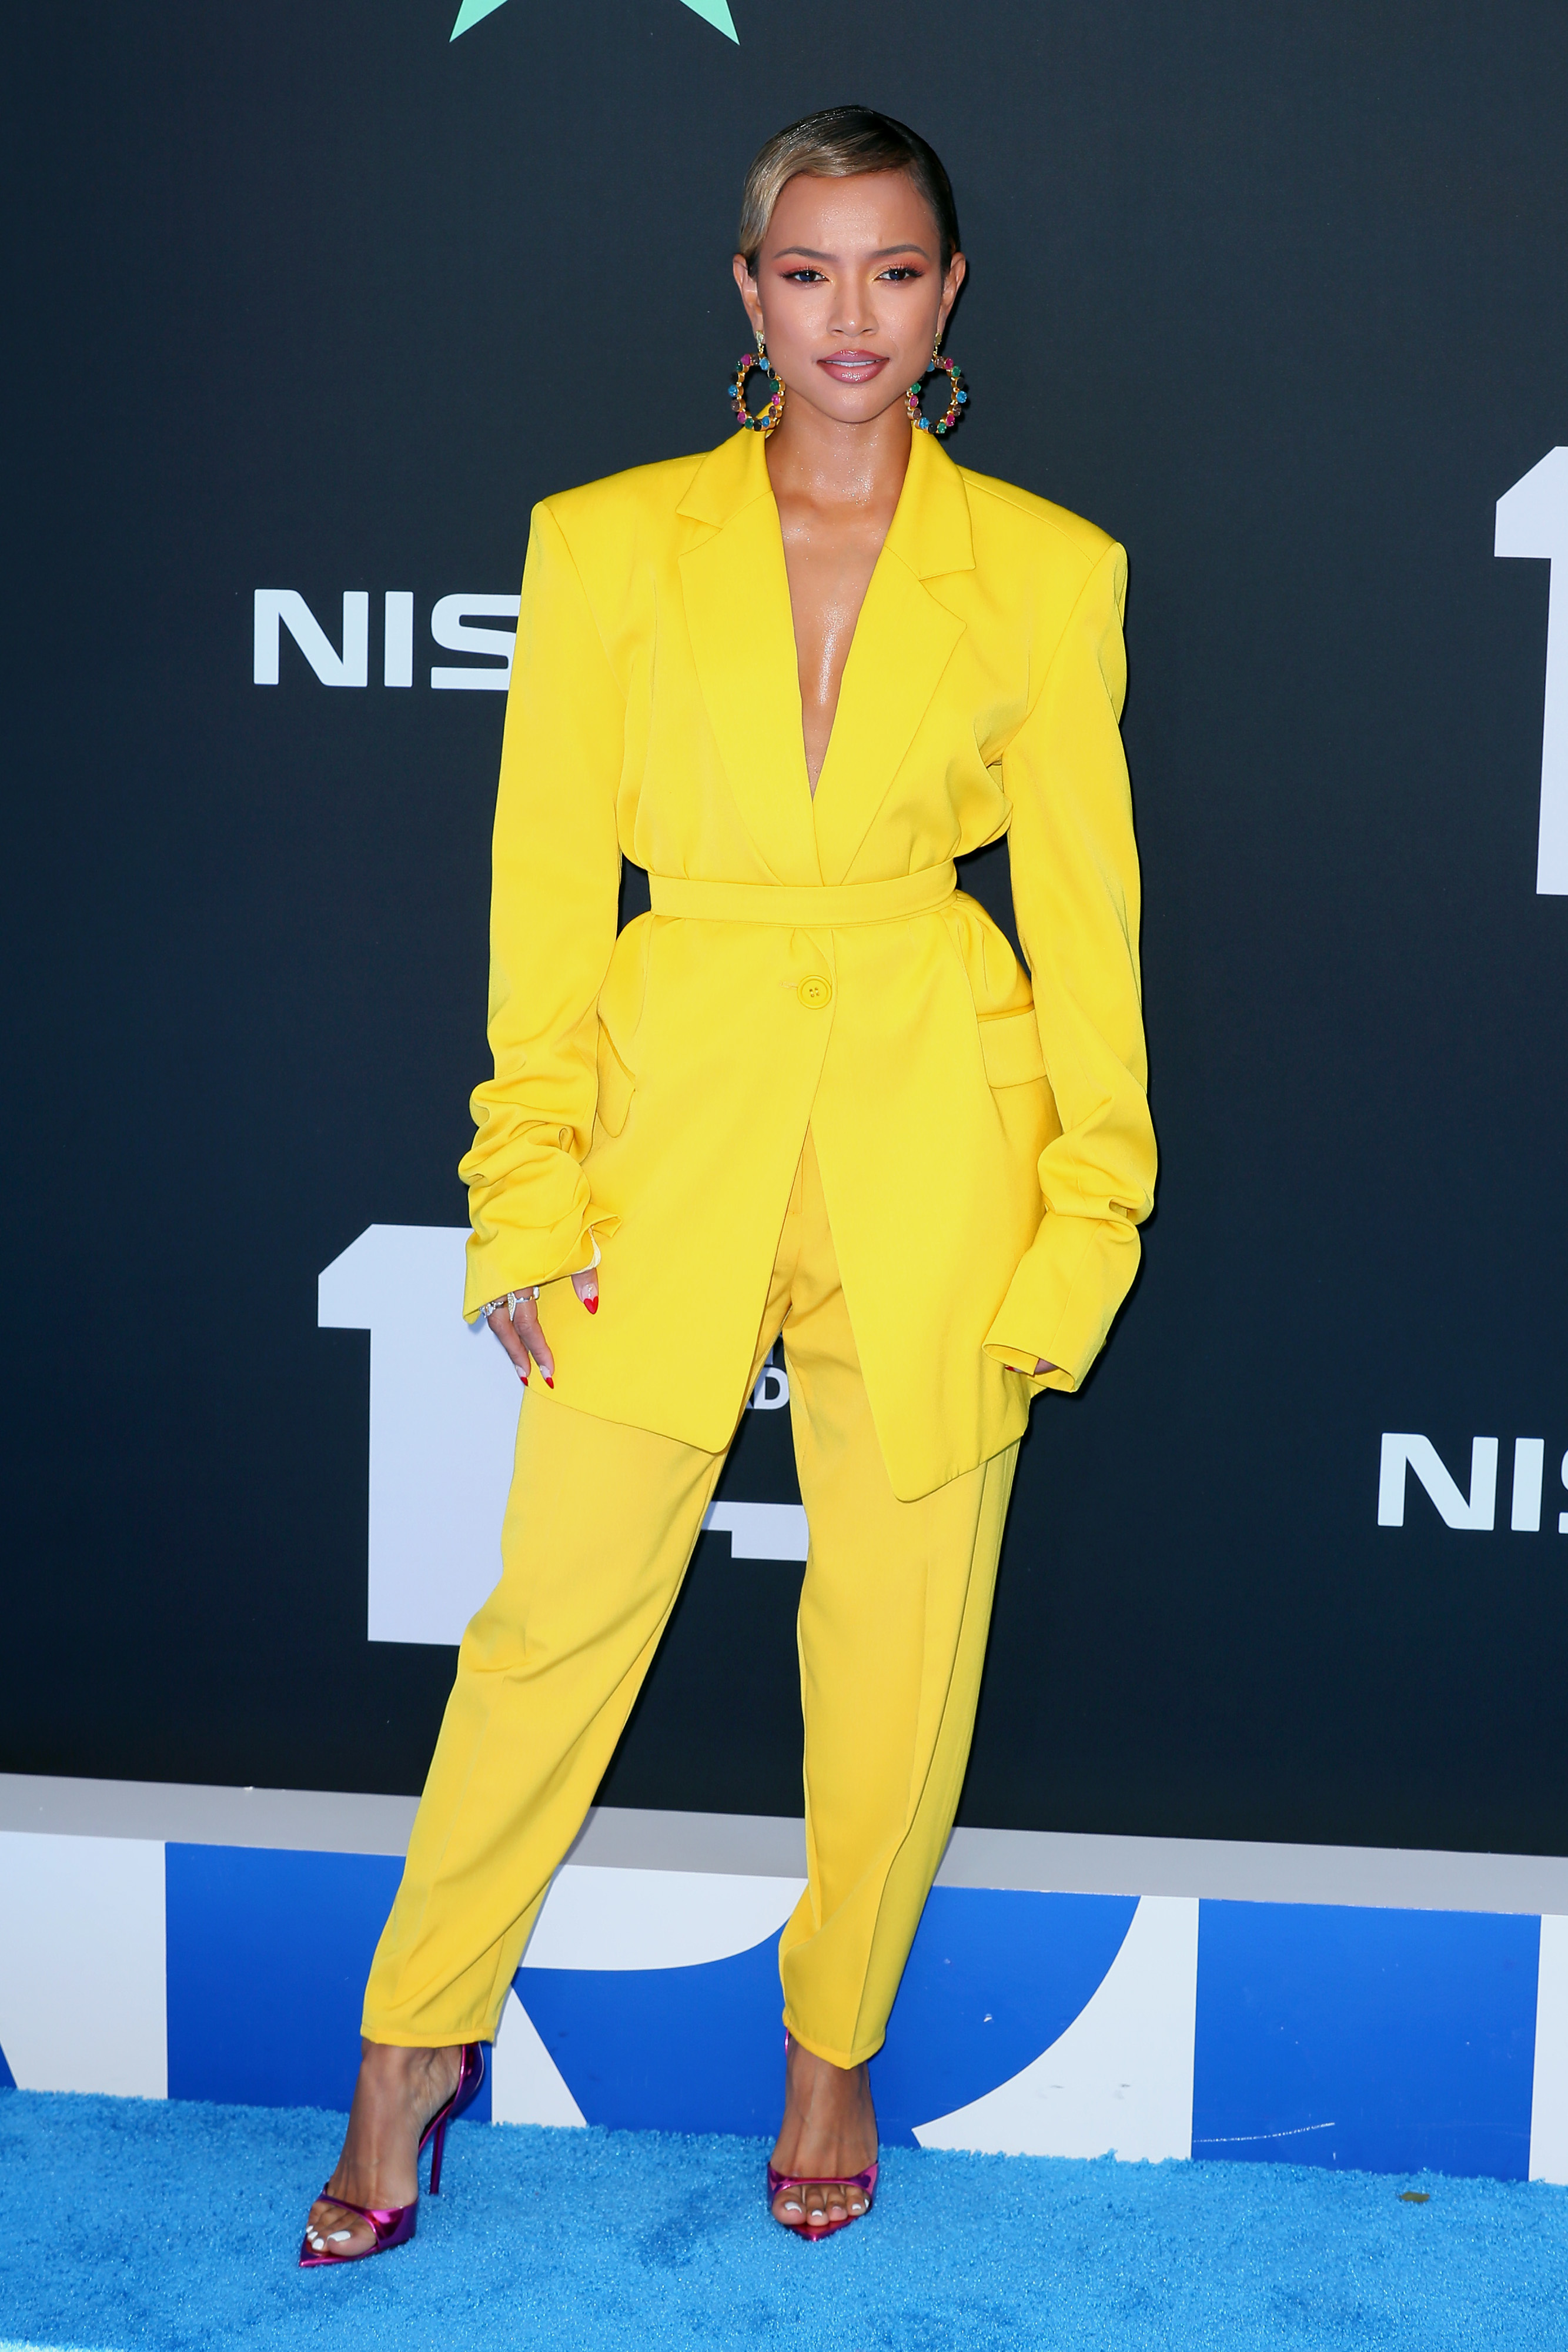 e1bb53e384f78e Fashion hits and misses from the 2019 BET Awards | Gallery ...